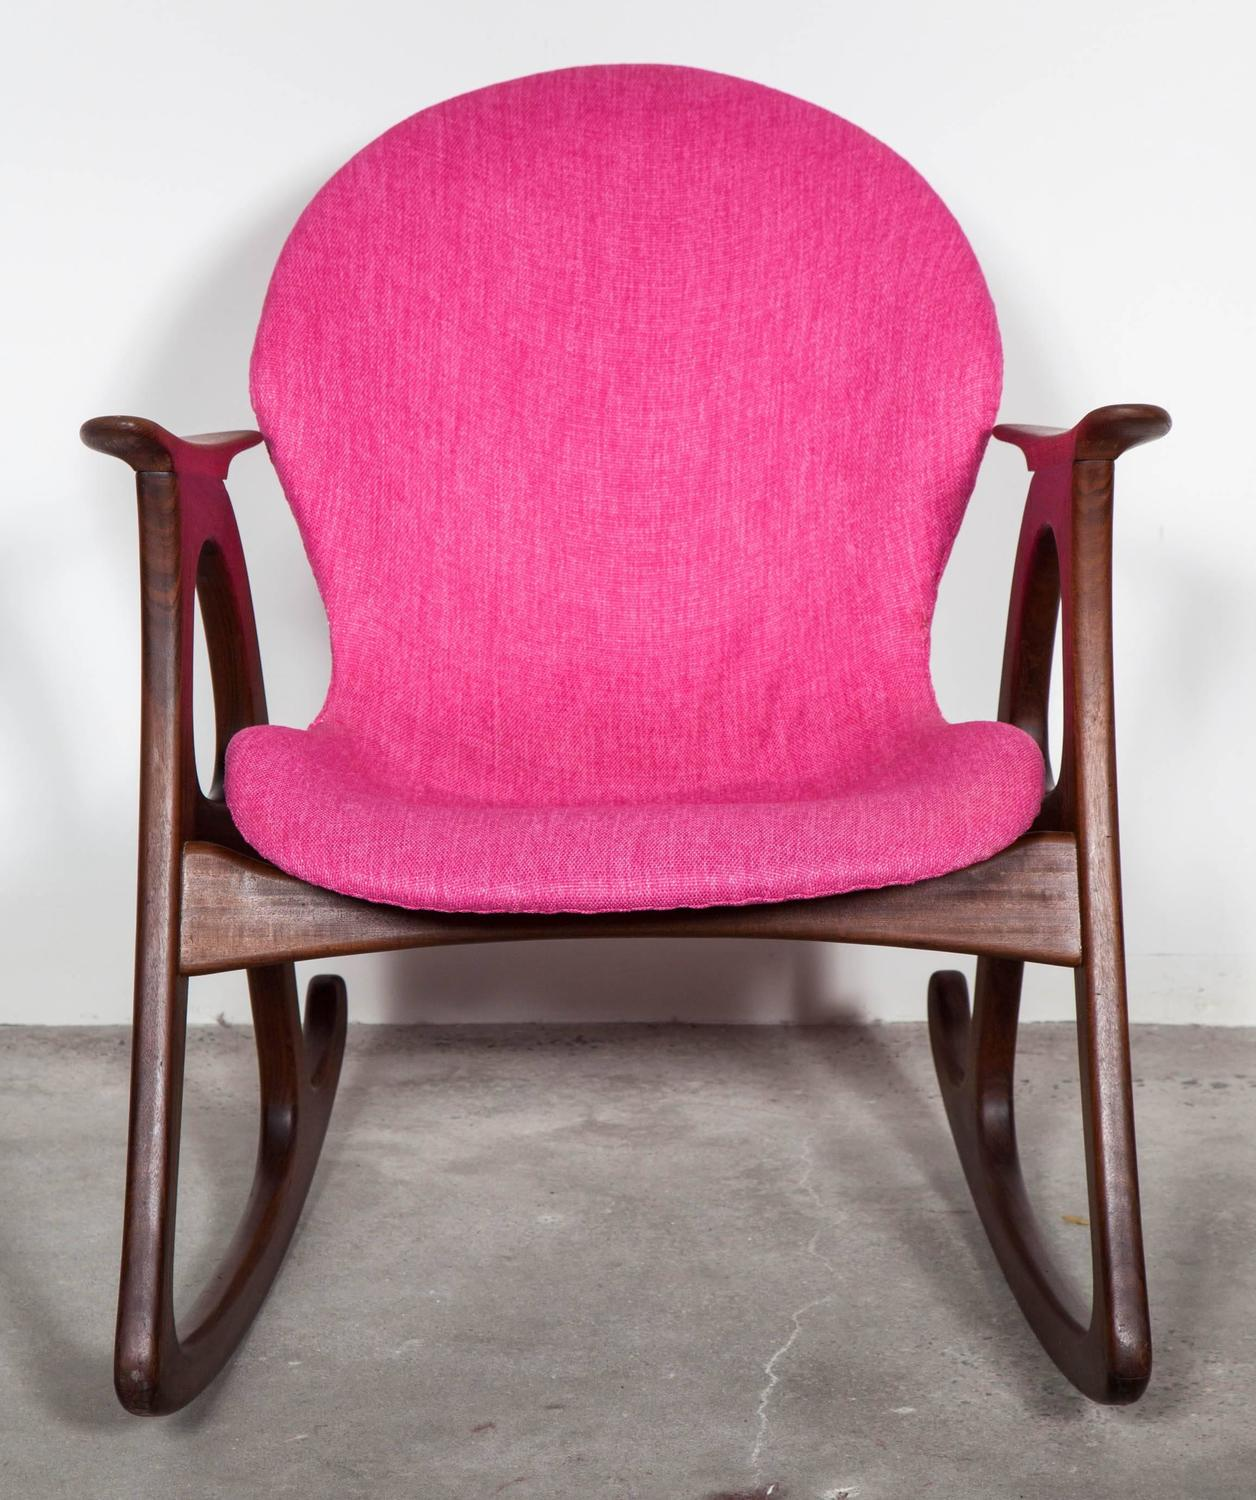 Teak Rocking Chair by Aage Christiansen, Pink at 1stdibs